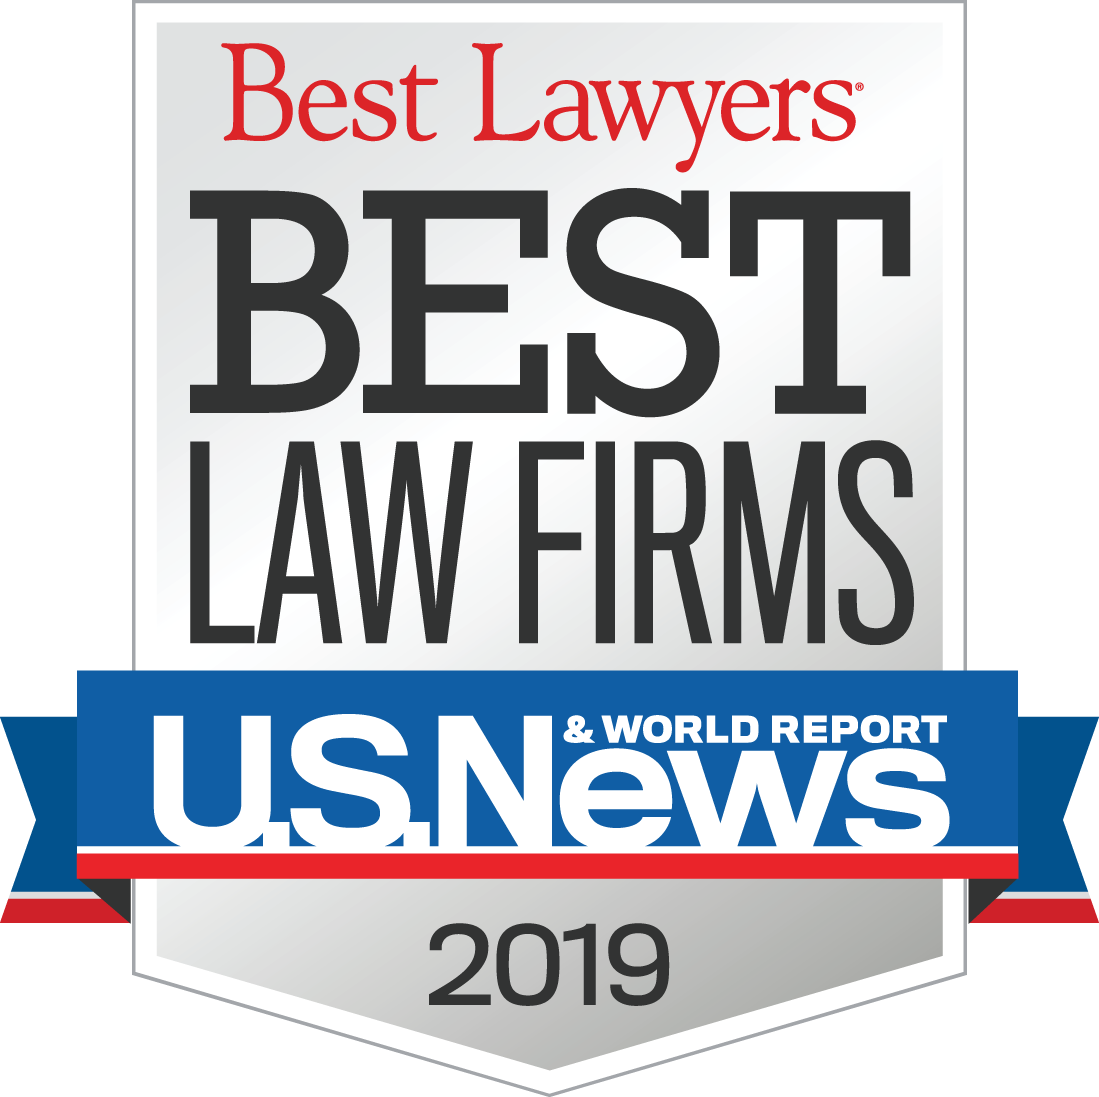 US News & World Report- Best Lawyers: Best Law Firms 2019